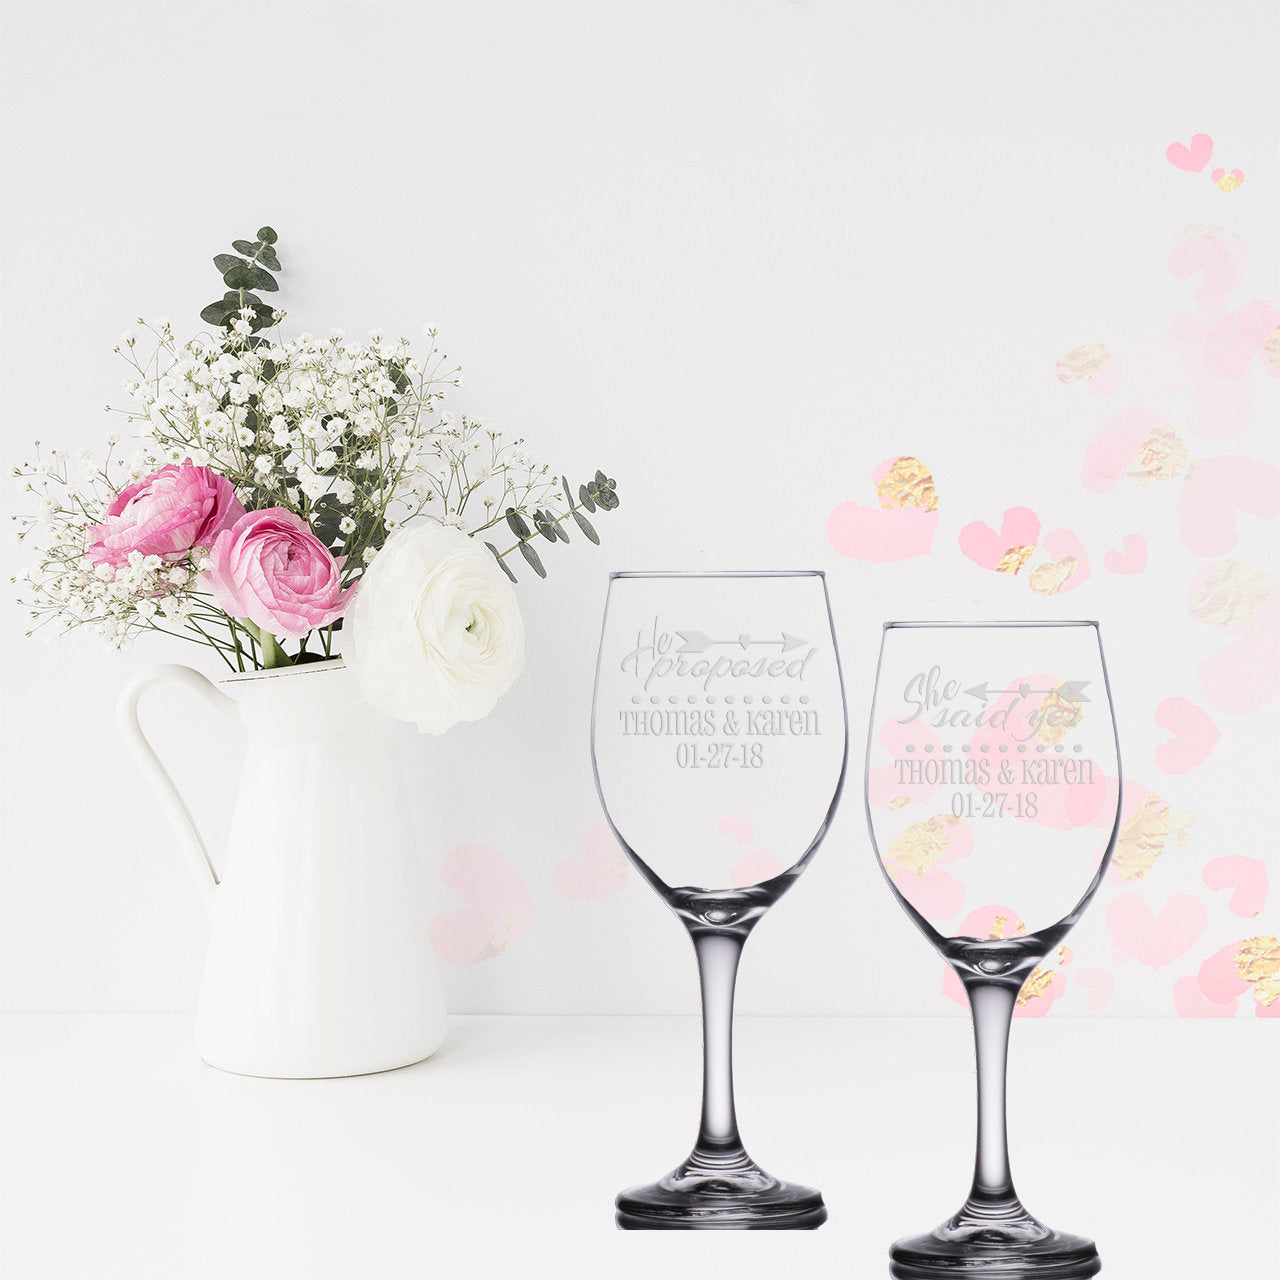 Personalized Engaged Couple Gift He Proposed She Said Yes Wine Glasses | Engagement Gift | Unique Couple Gift | Bridal Shower Glass Set